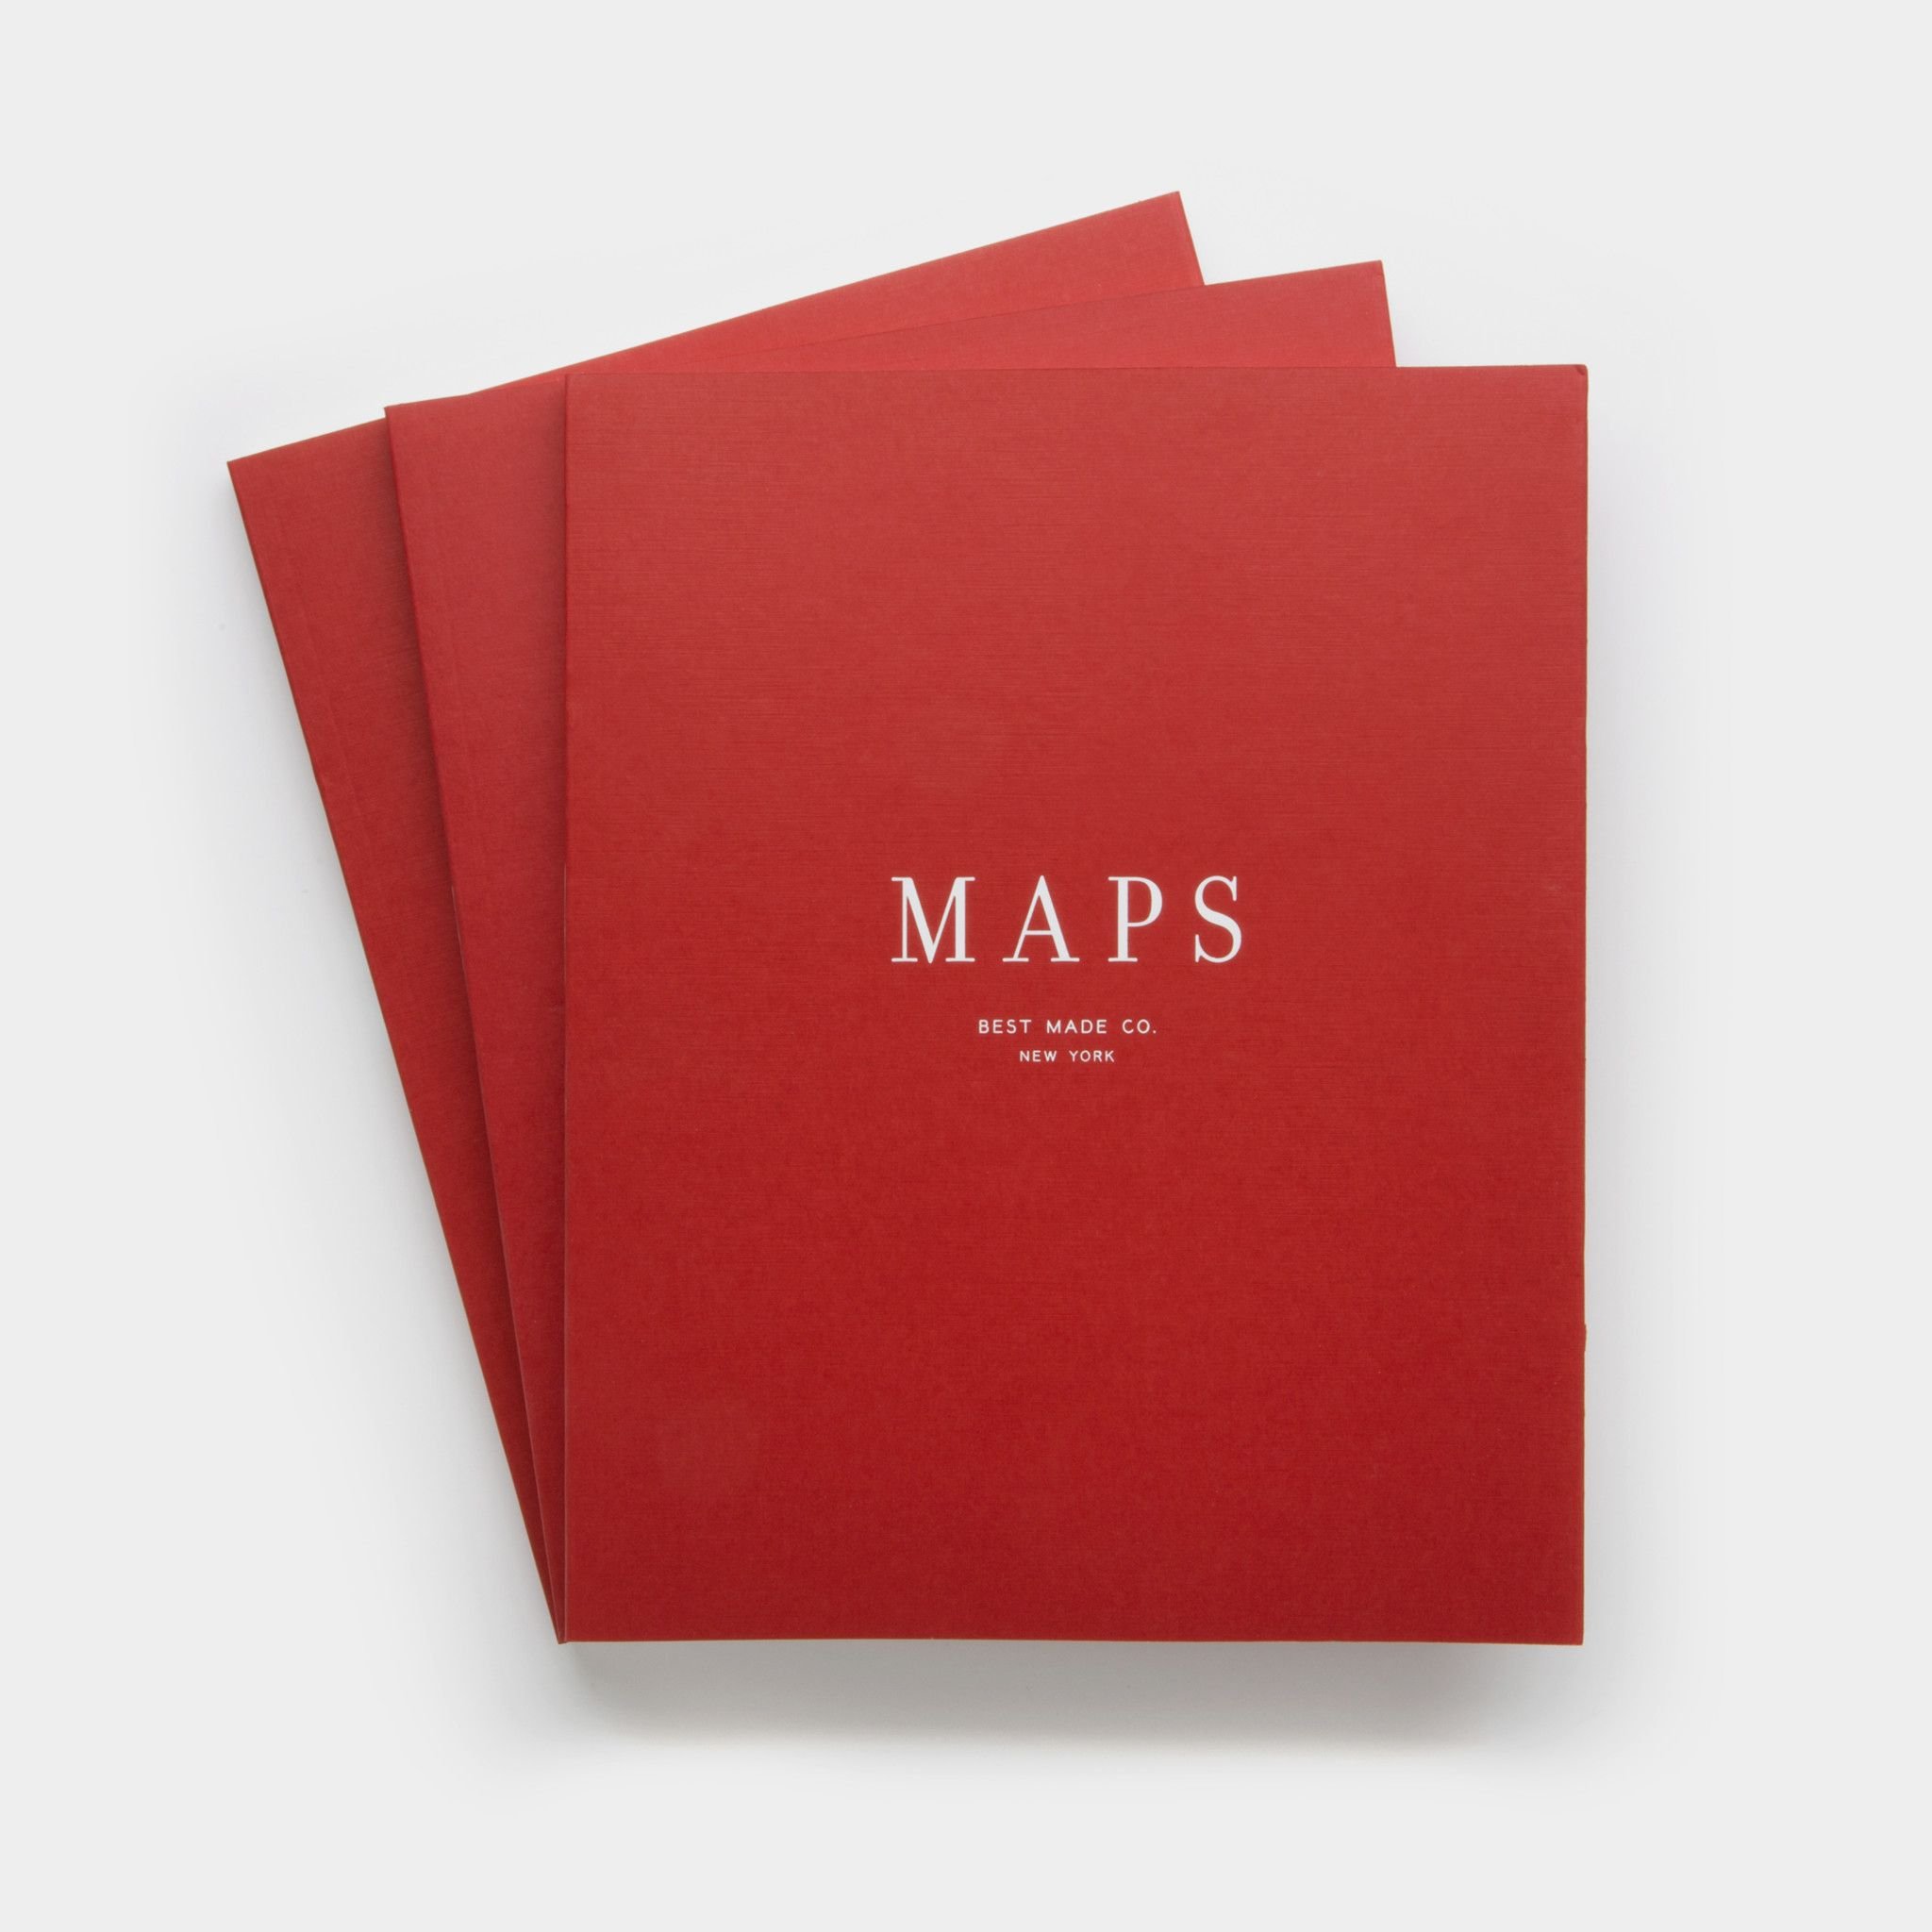 Bmc 07201516905 Gw Pu1rpm Map Notebook Cool Things To Make Map